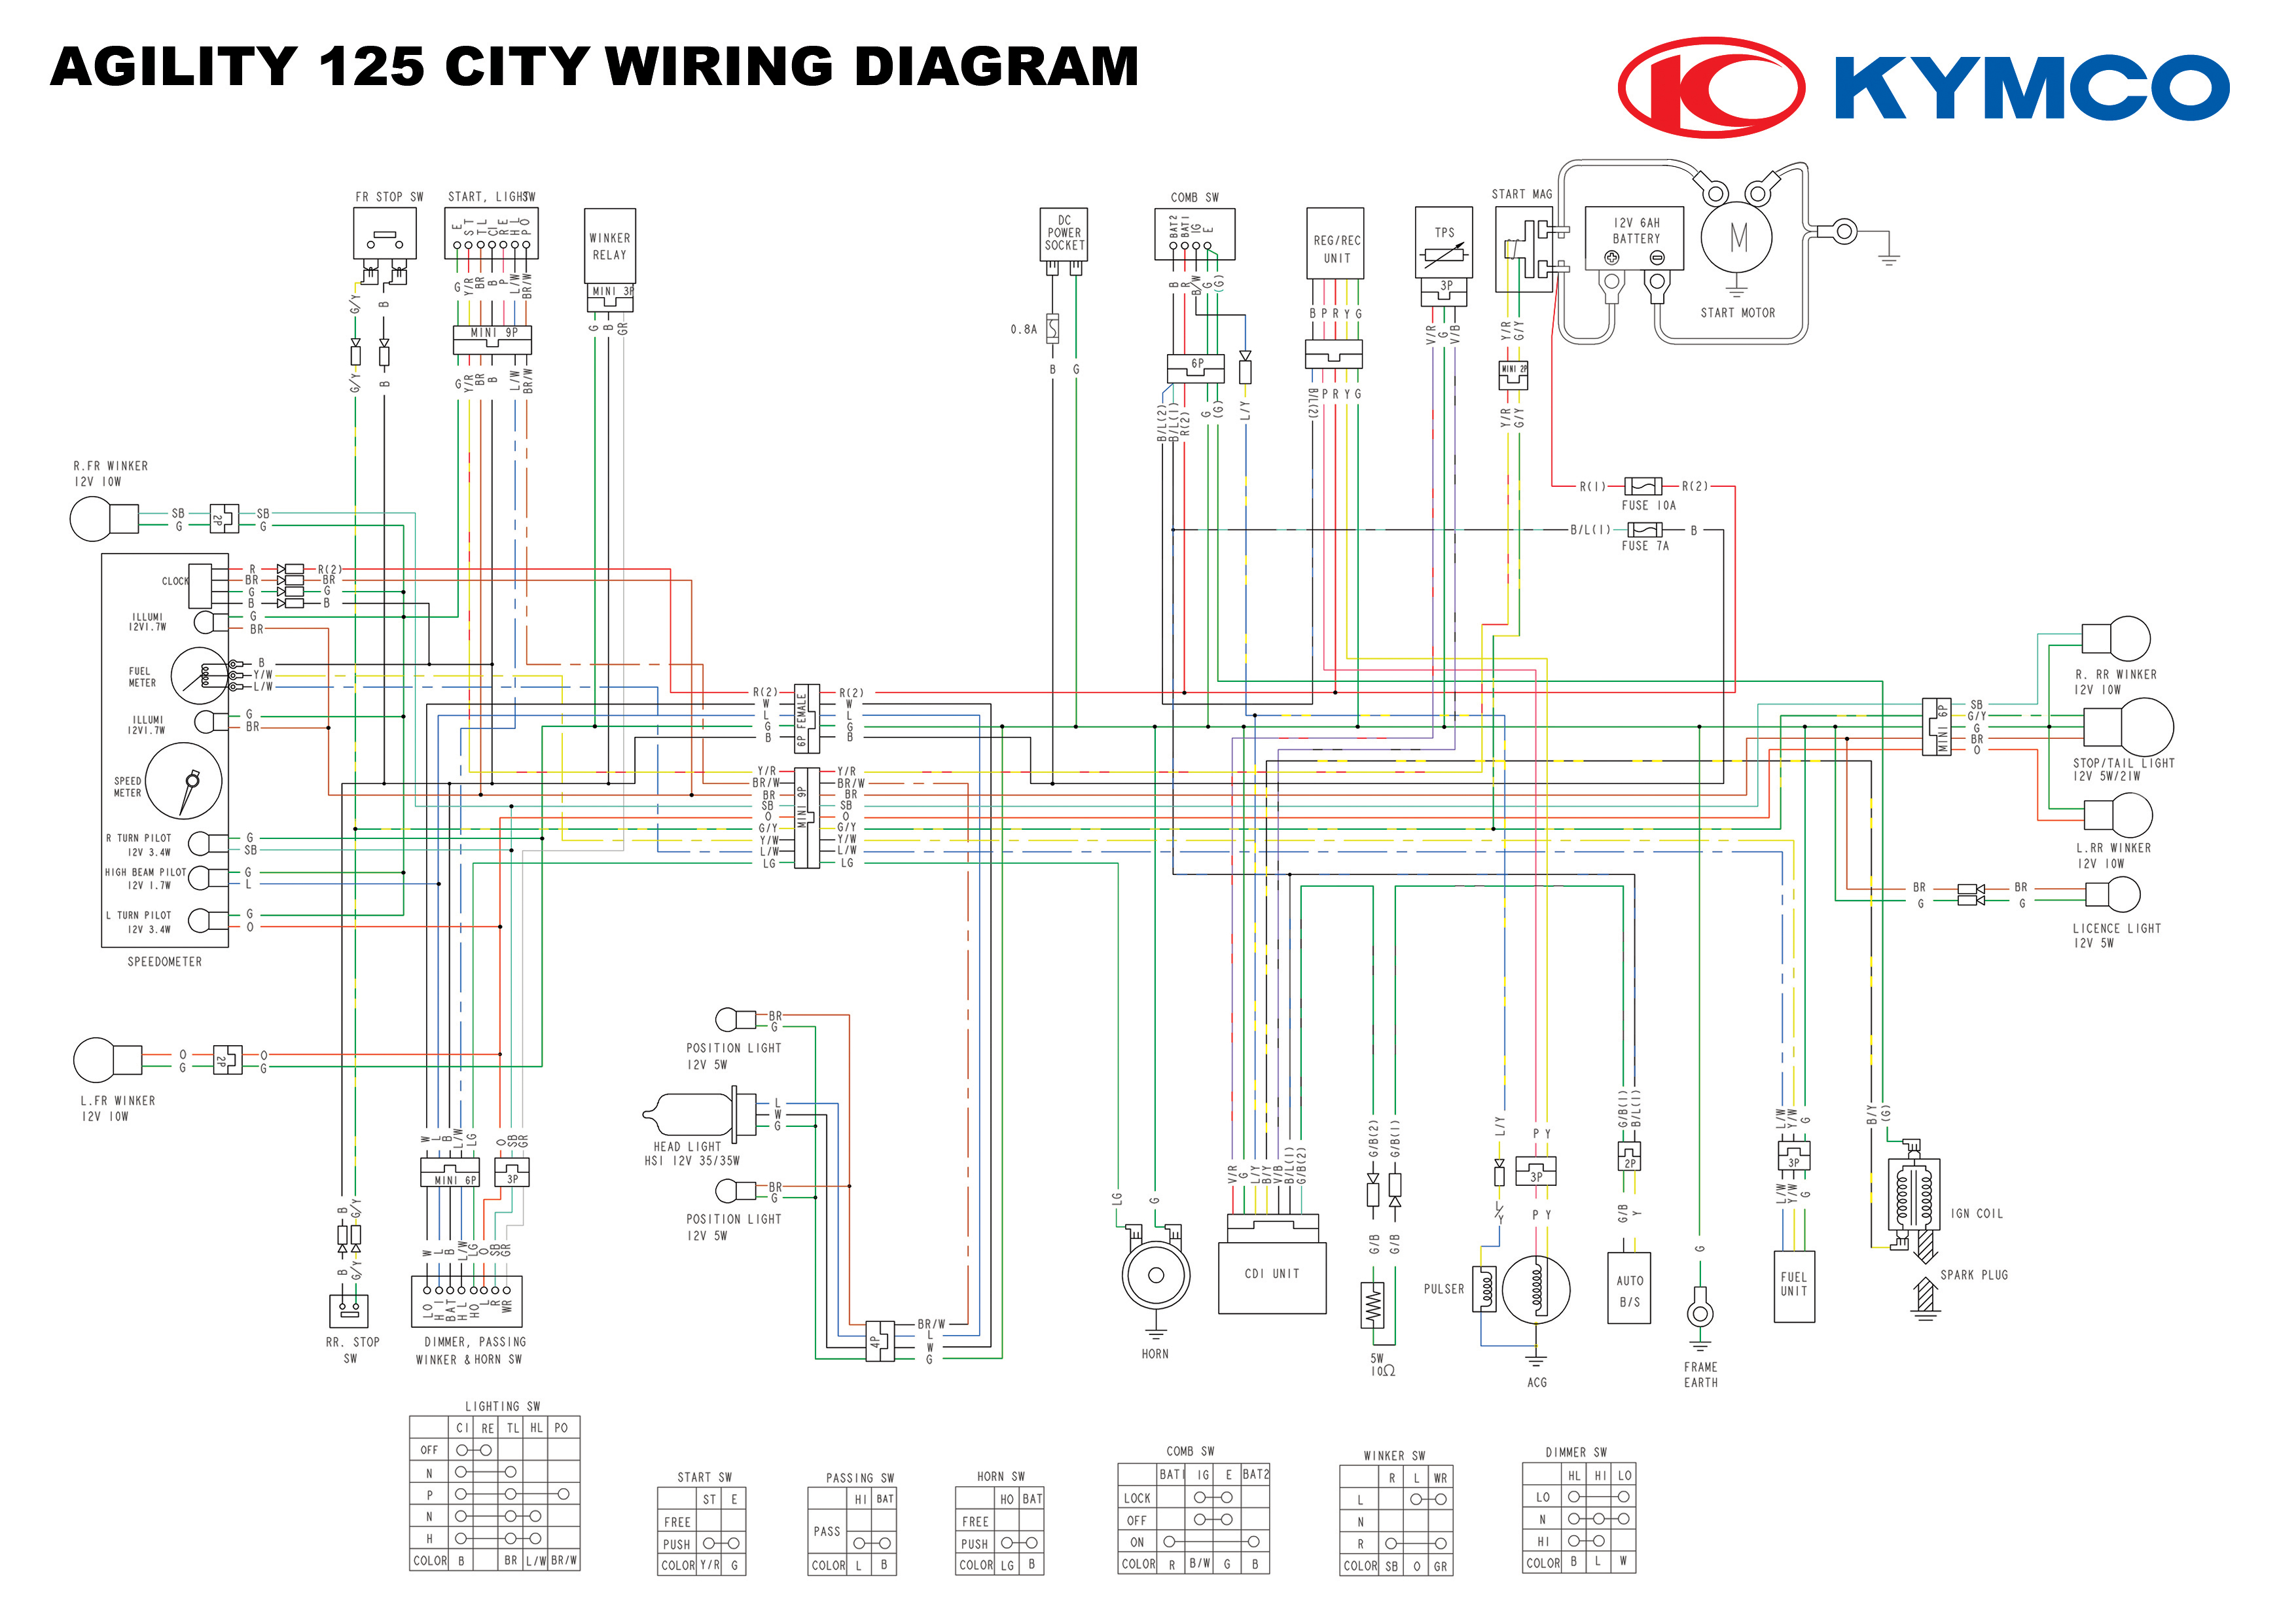 super 8 kymco cdi wiring engine wiring diagram images. Black Bedroom Furniture Sets. Home Design Ideas